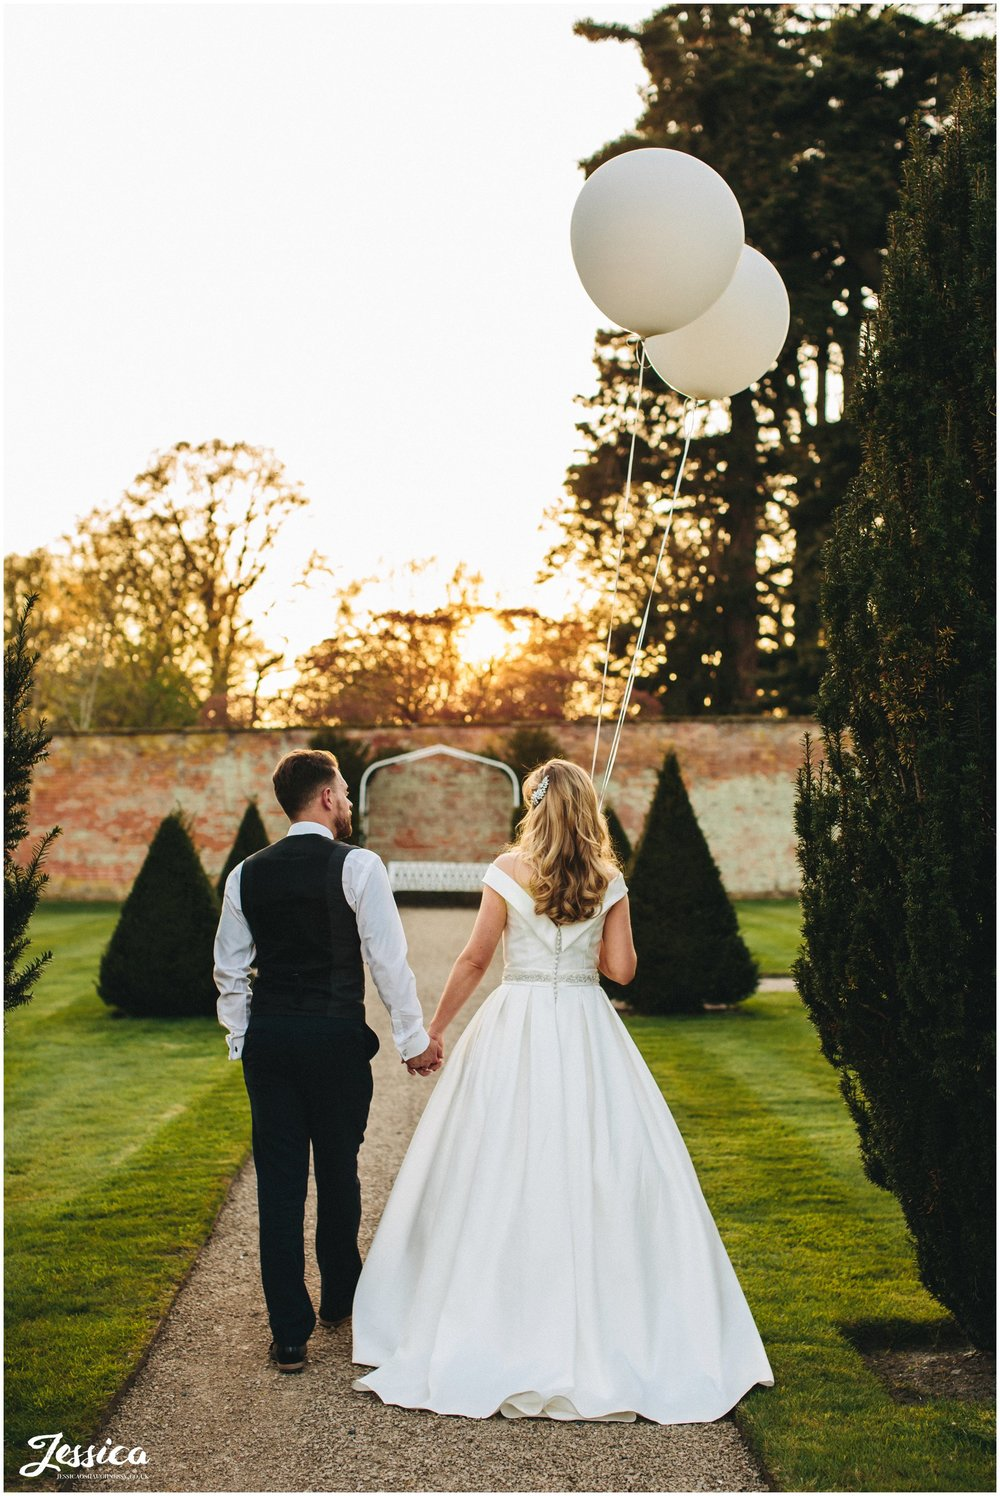 newly wed's walk towards sun set holding big white balloons